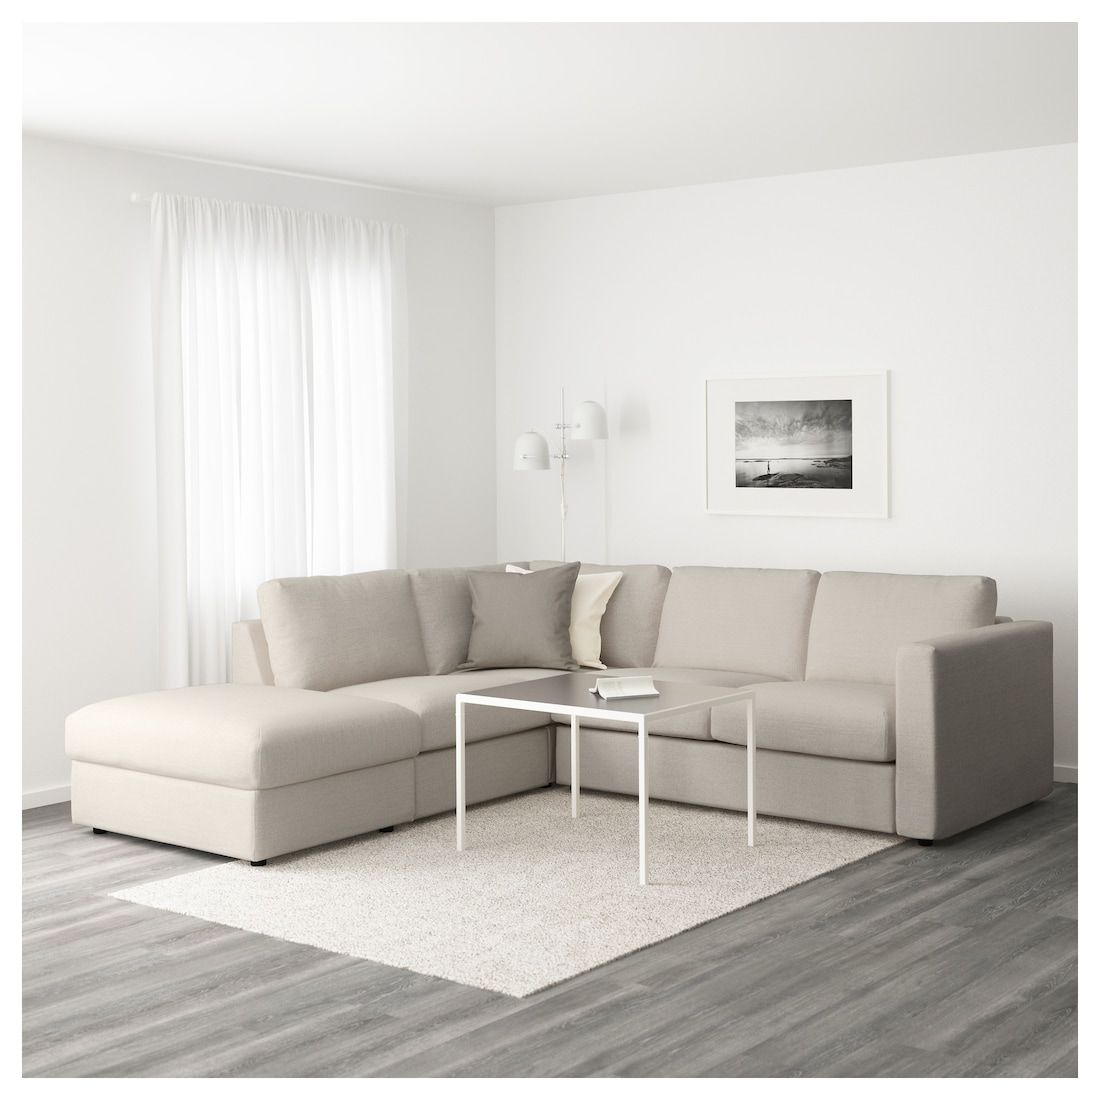 Vimle Sectional 4 Seat Corner With Open End Gunnared Beige Ikea Modern Sectional Ikea Vimle Sectional Chaise